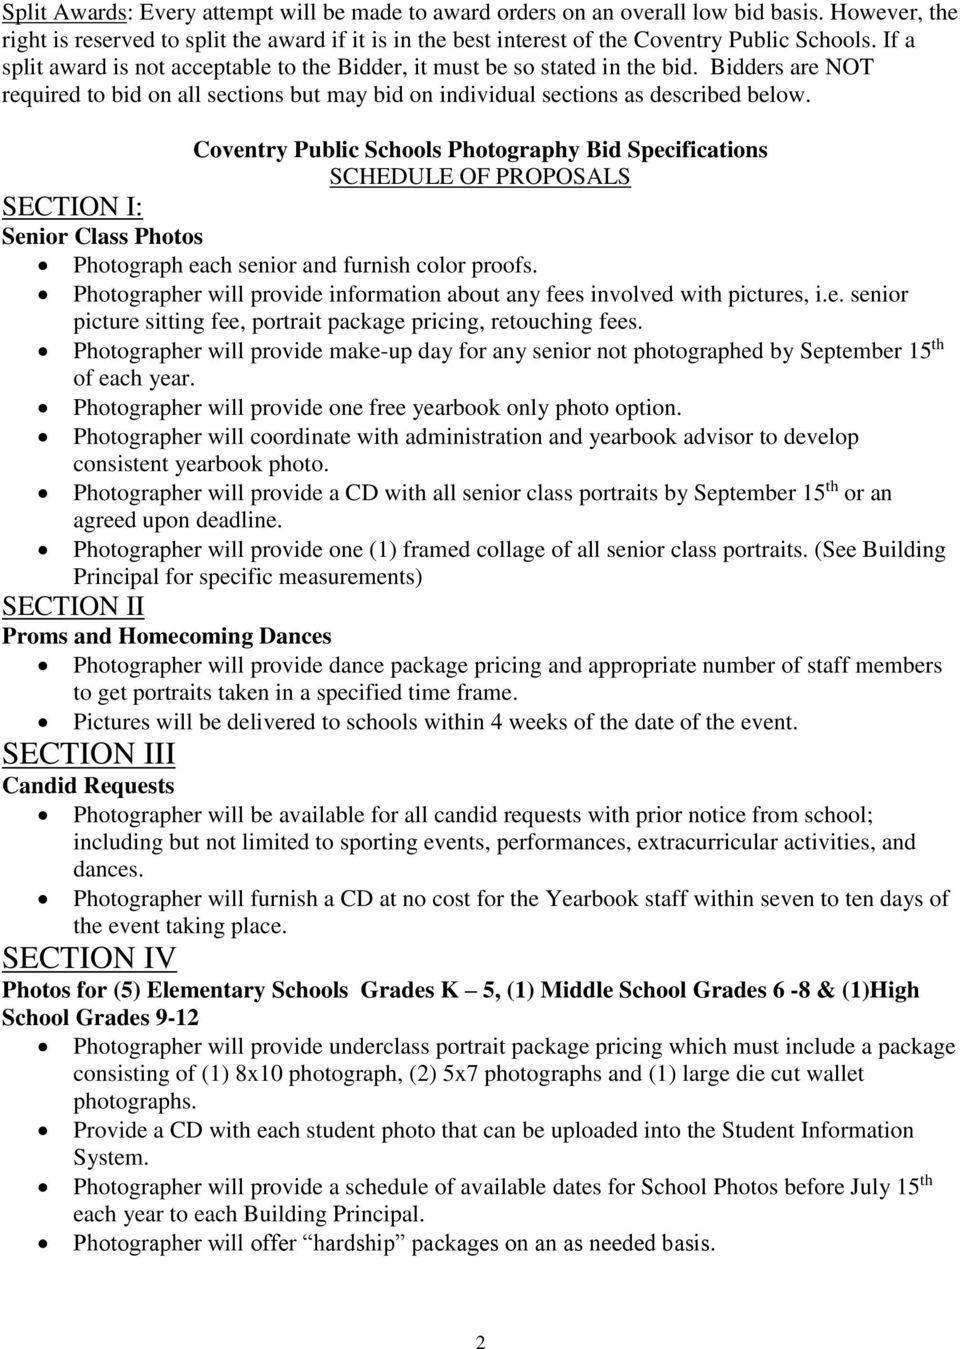 SECTION I: Coventry Public Schools Photography Bid Specifications SCHEDULE OF PROPOSALS Senior Class Photos Photograph each senior and furnish color proofs.